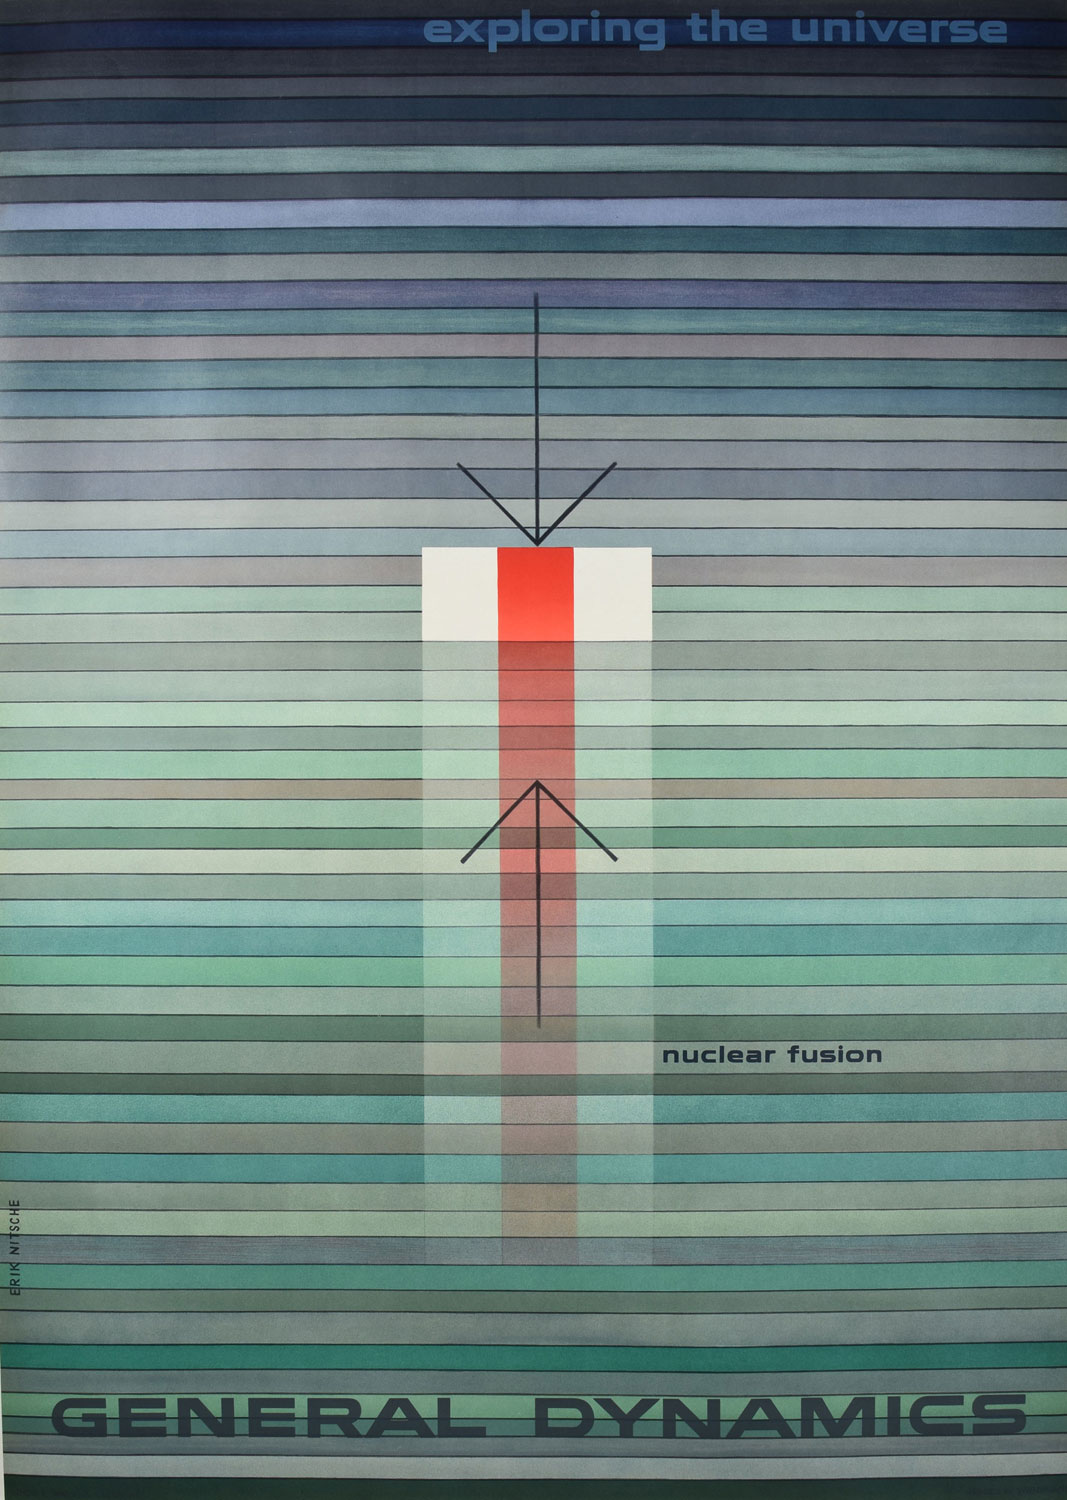 General Dynamics Nuclear Fusion Poster Modernism